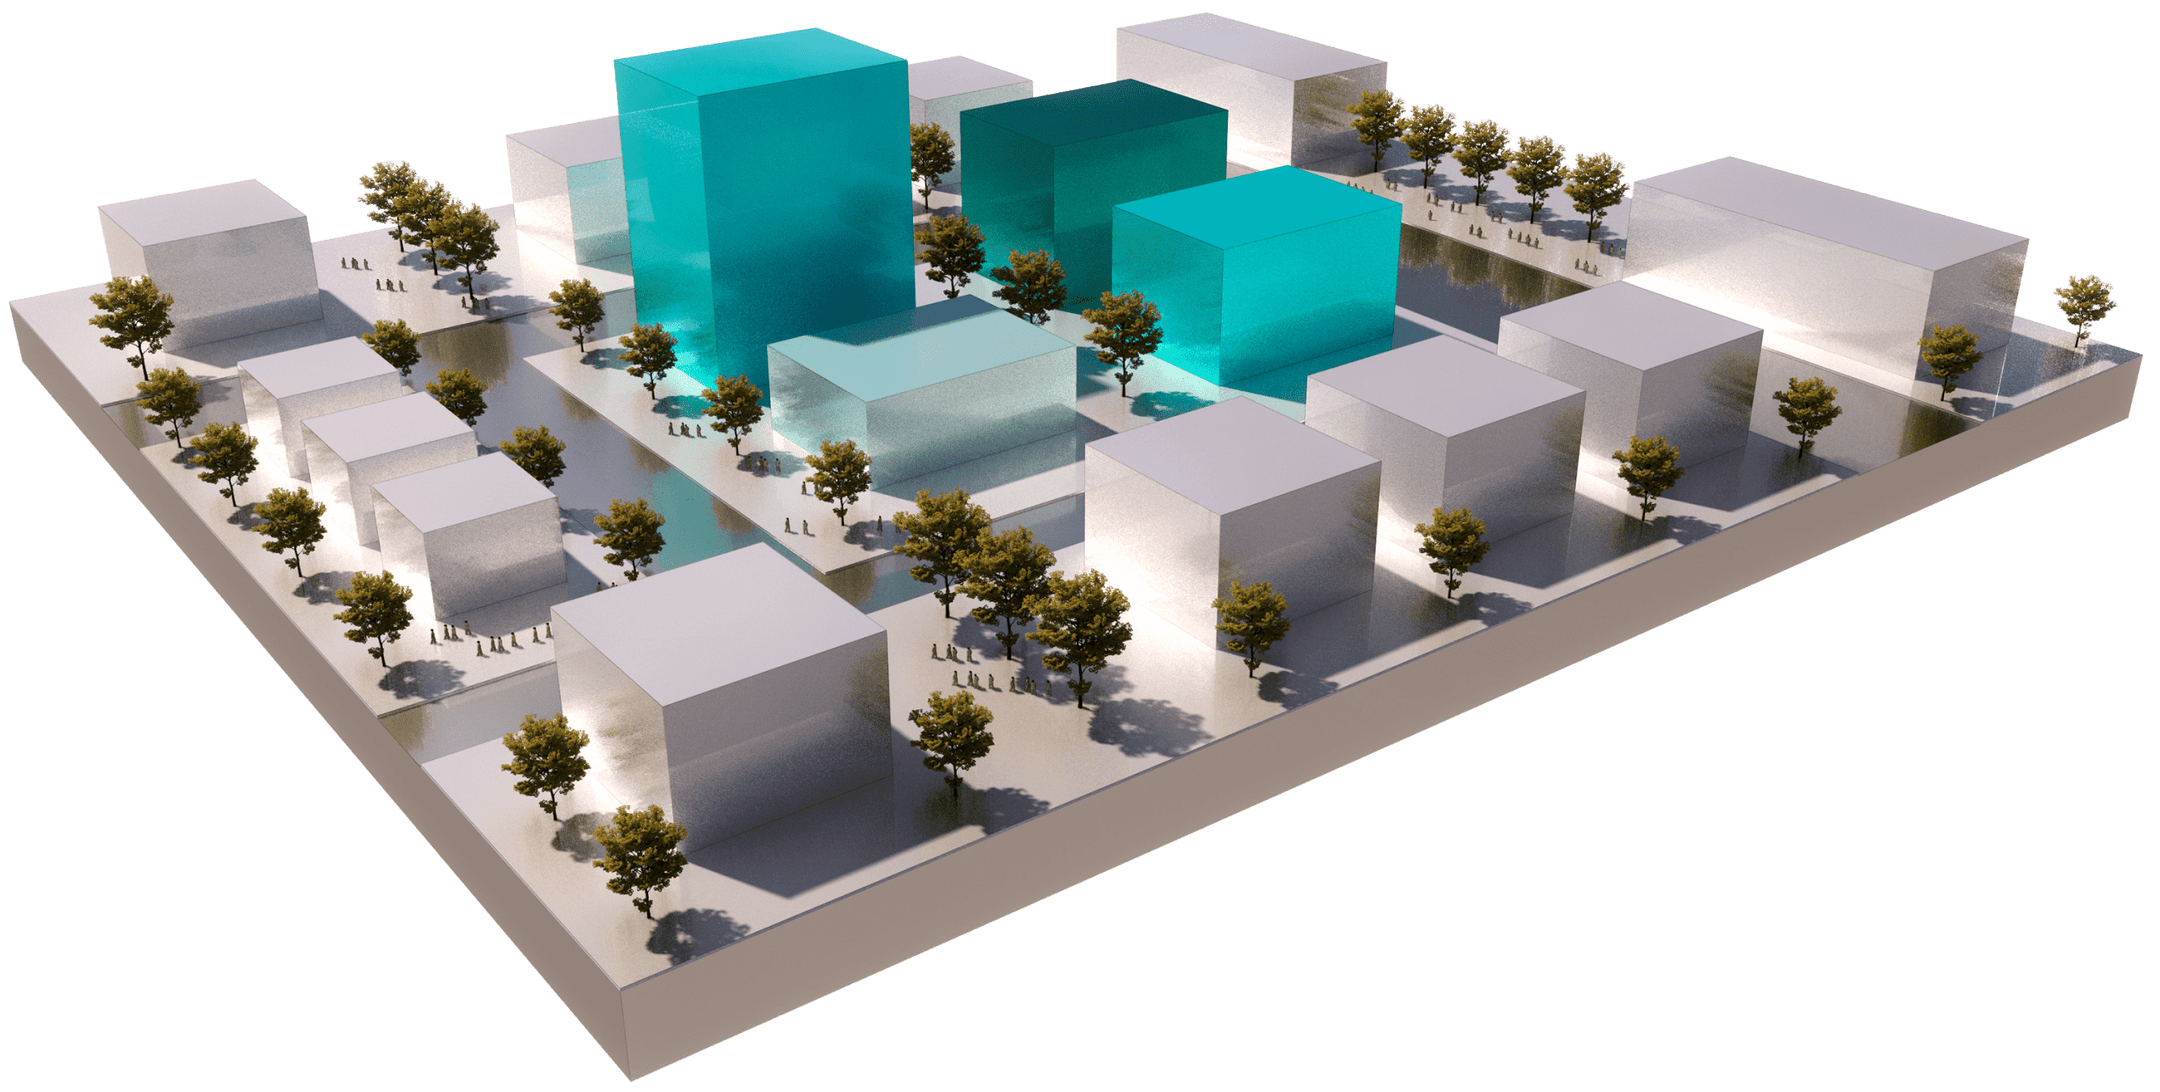 design-styles-architecture-education-02-scaled